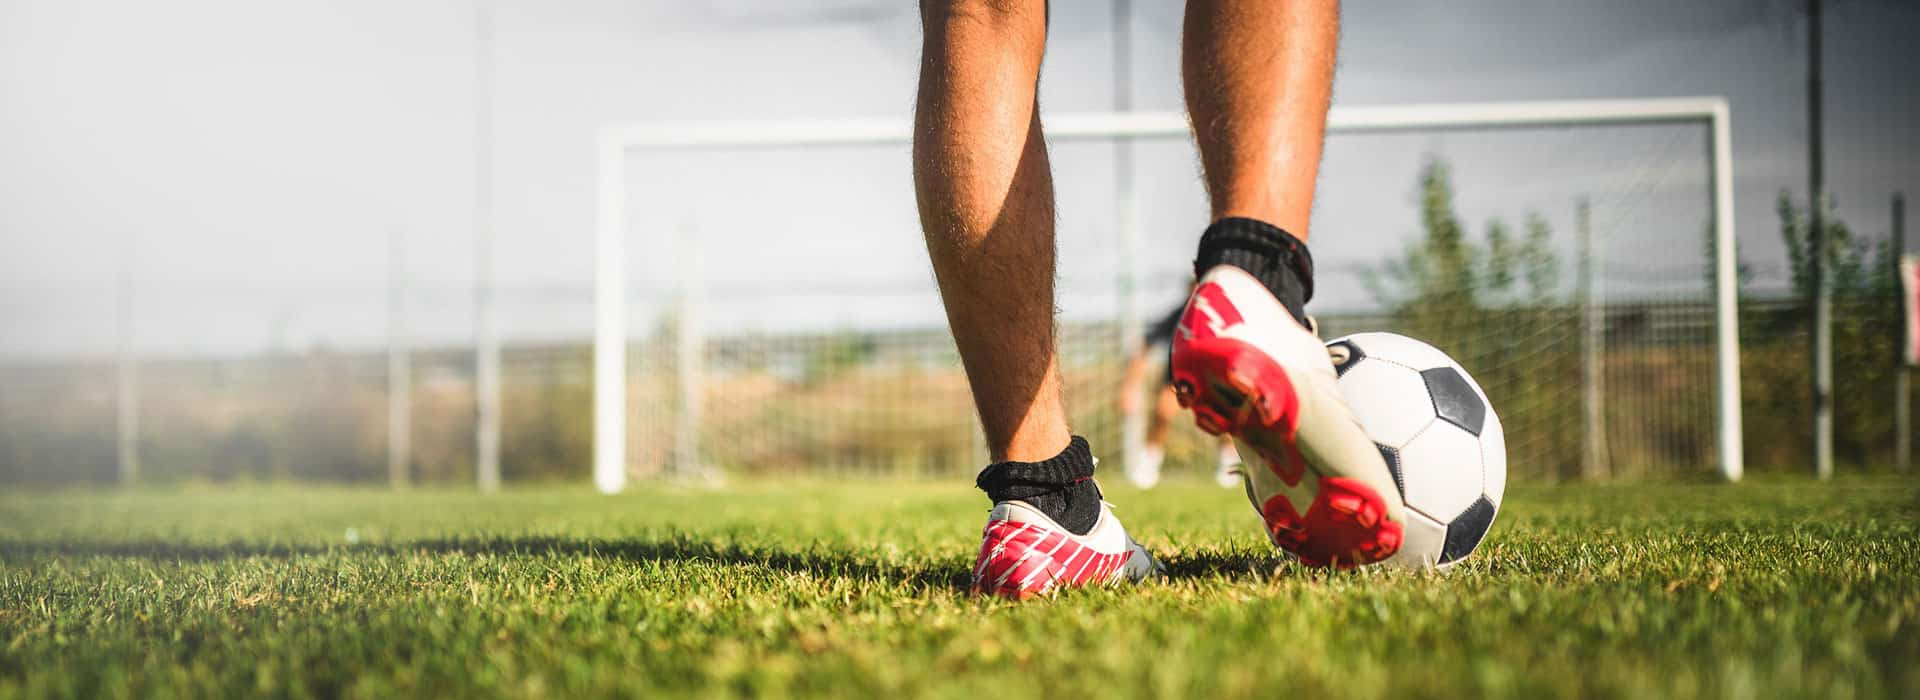 Best Soccer Shoes For 2018 – Buying Guide for Consumers